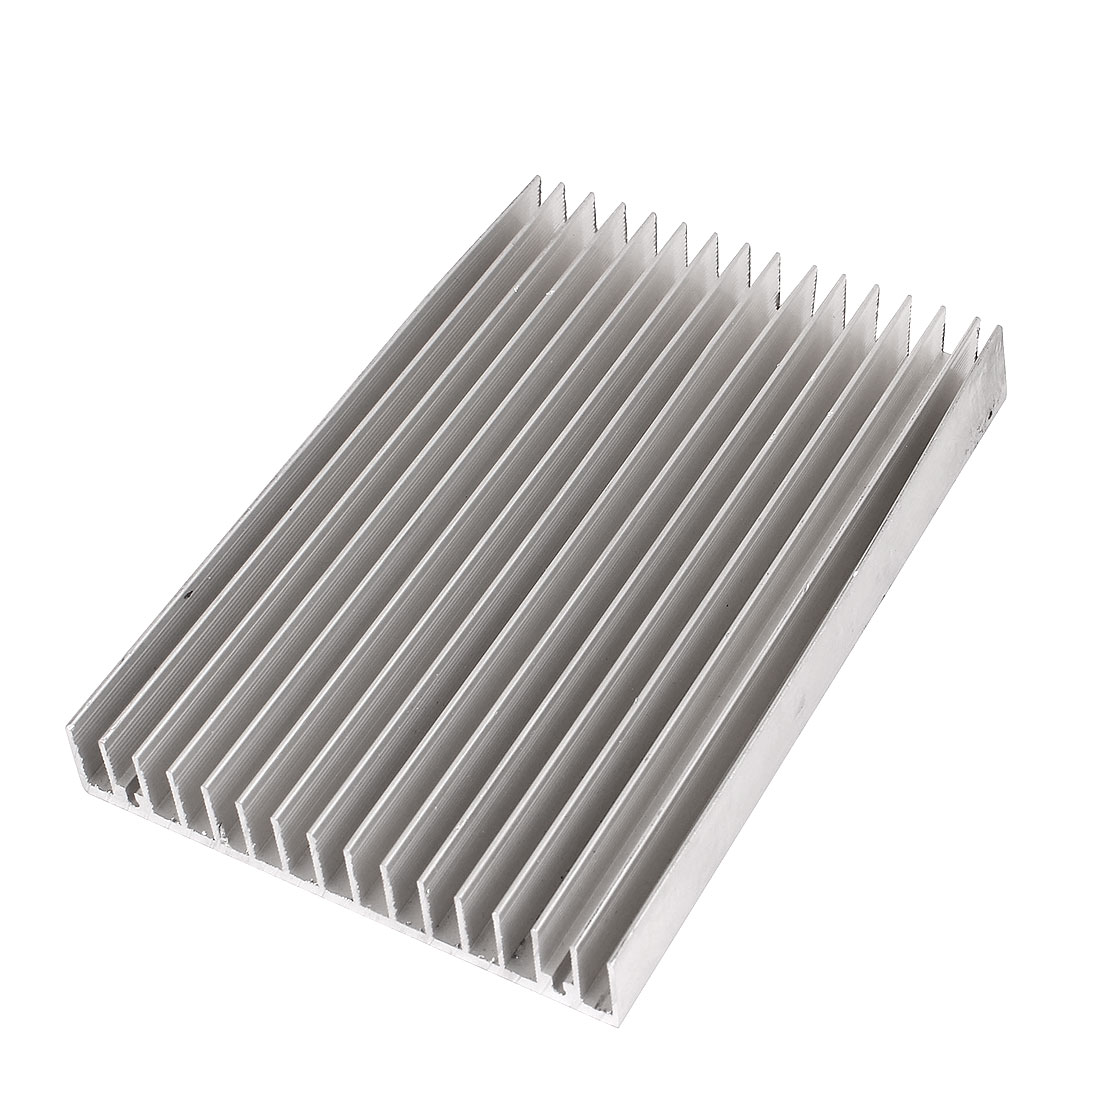 150mm x 100mm x 18mm Aluminum Heat Sink Heatsink for LED Power IC Transistor